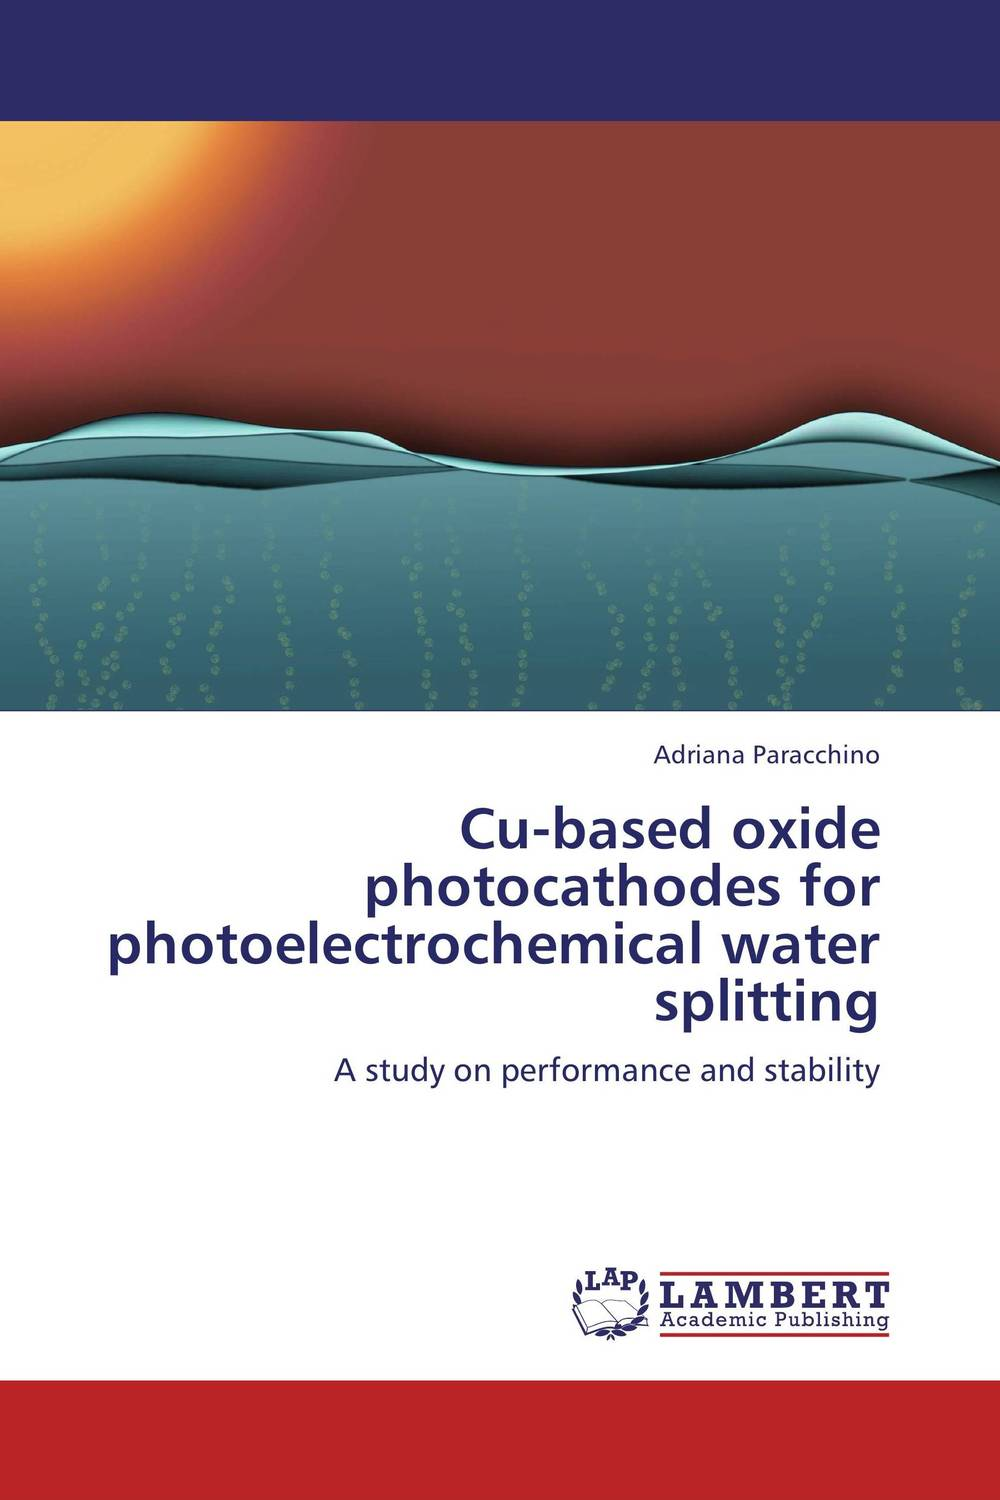 Cu-based oxide photocathodes for photoelectrochemical water splitting